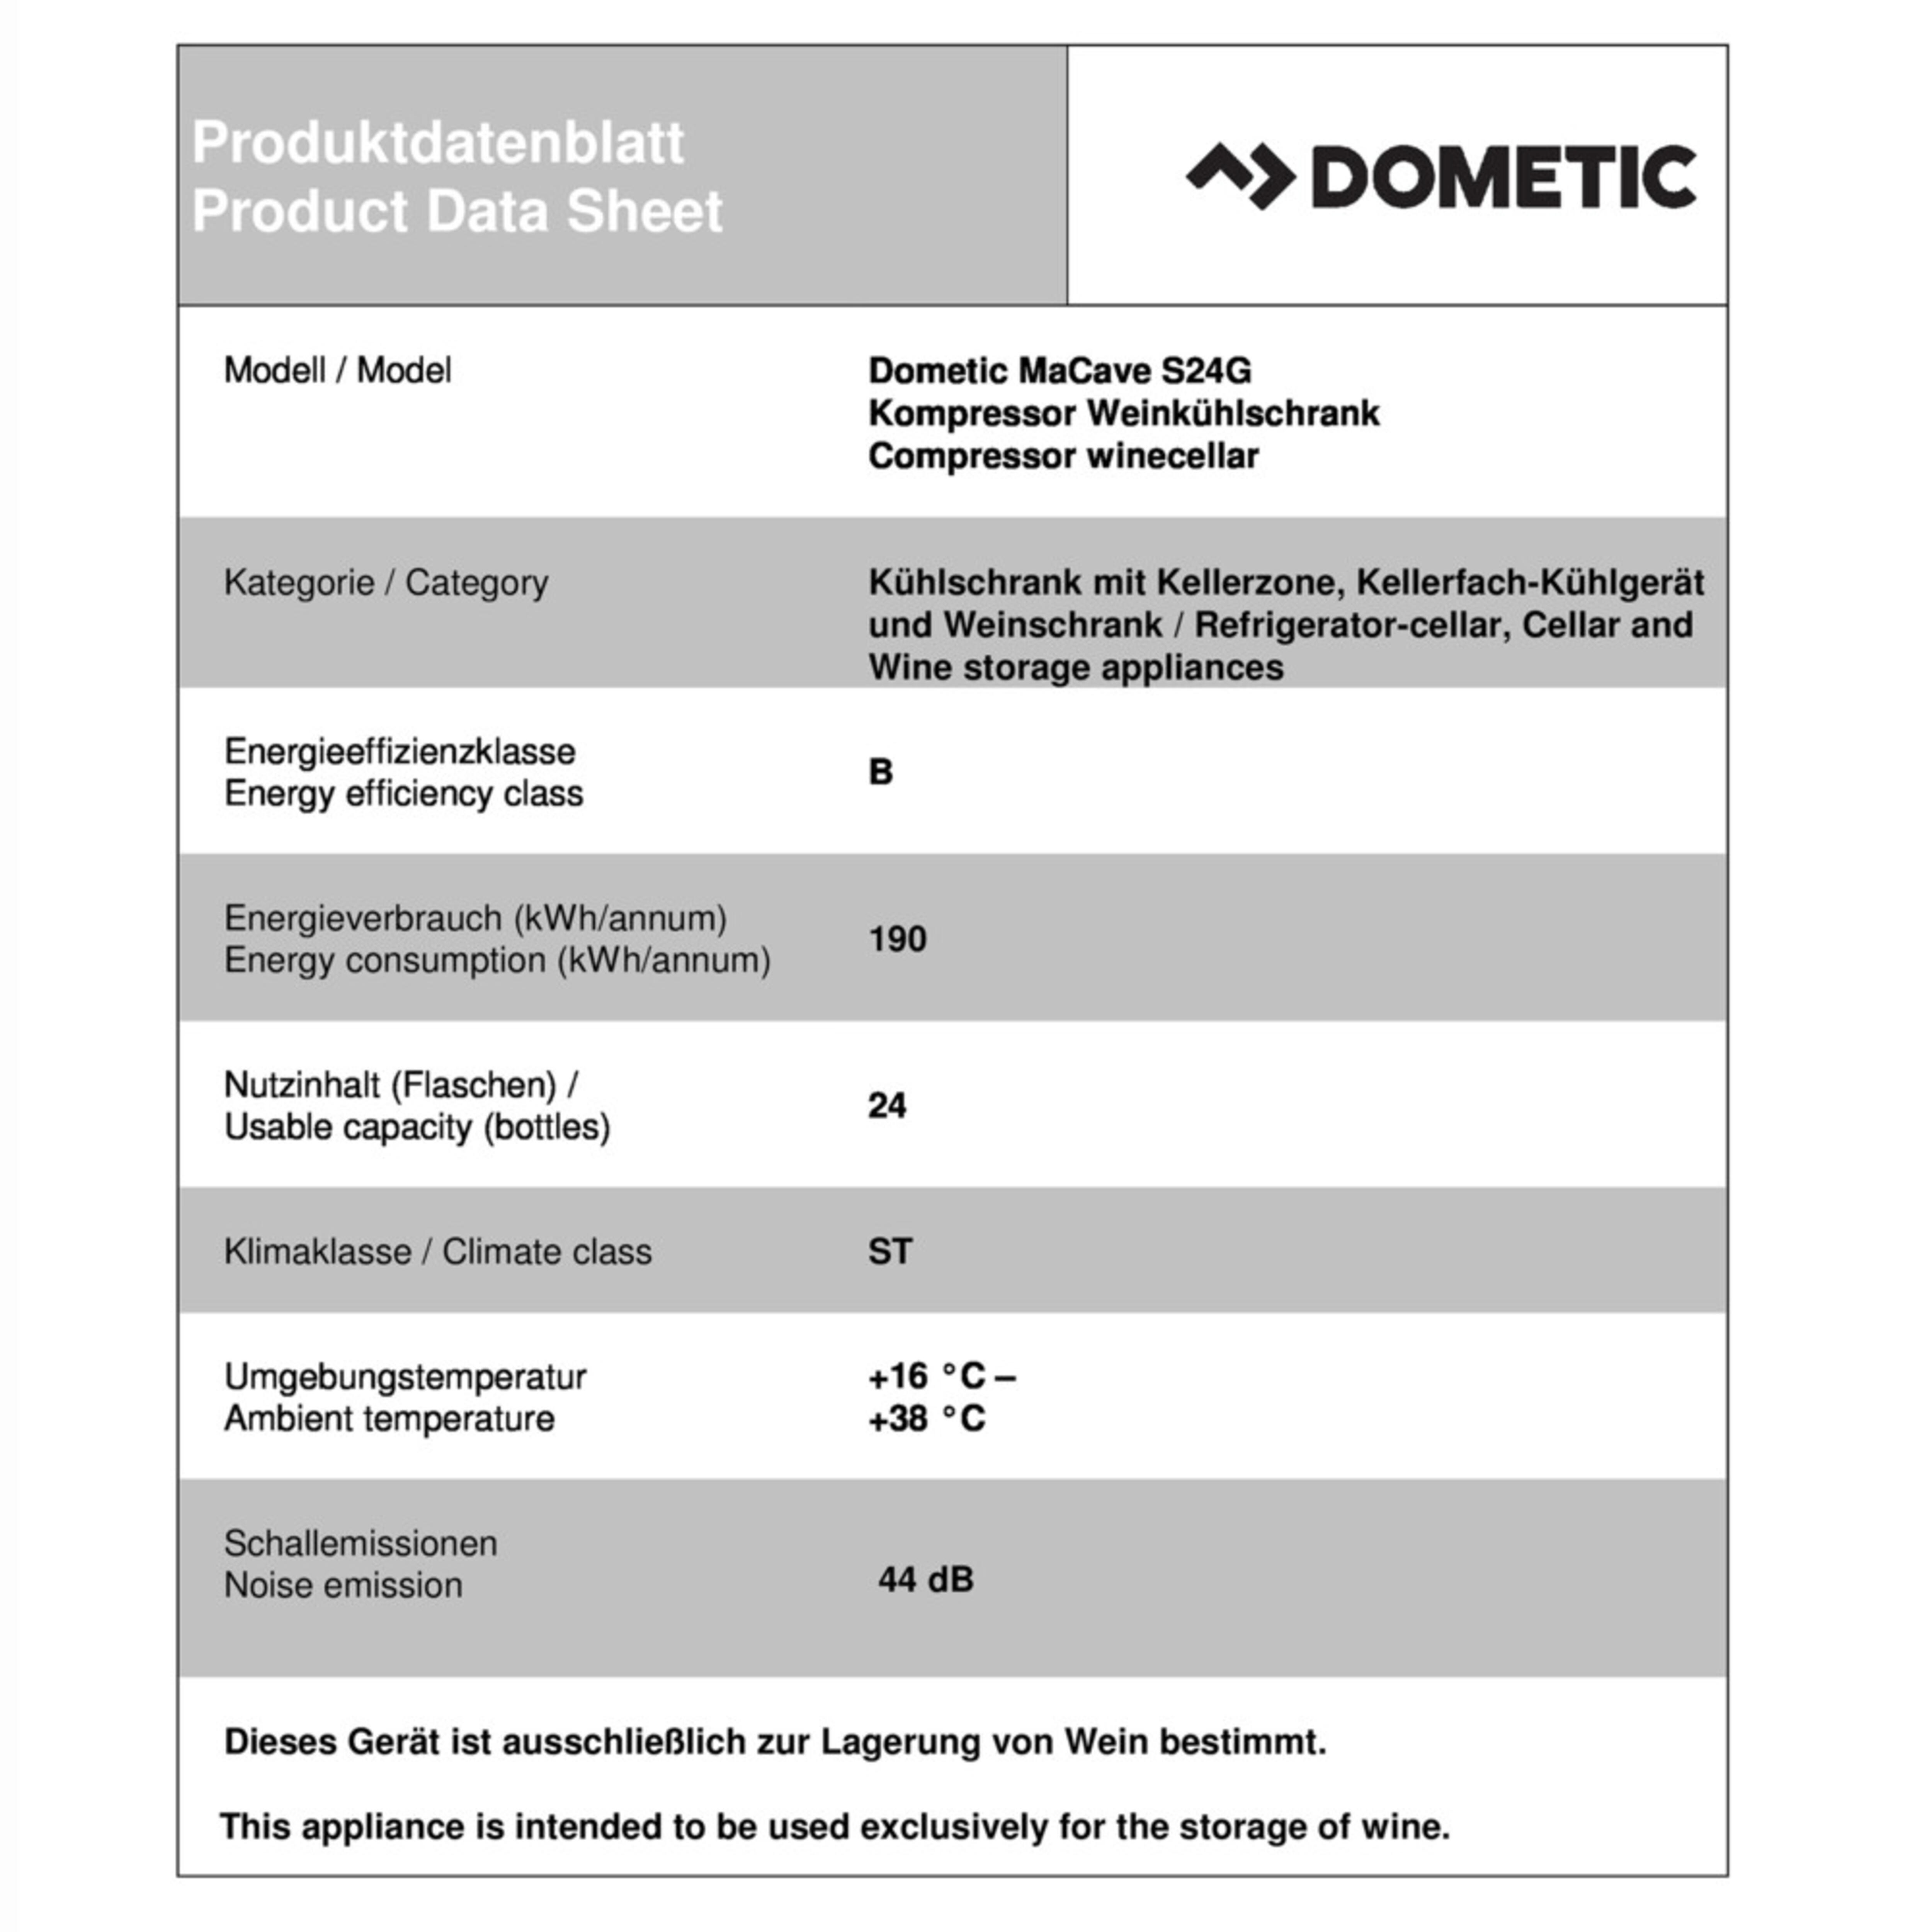 Dometic MaCave S24G Product fiche